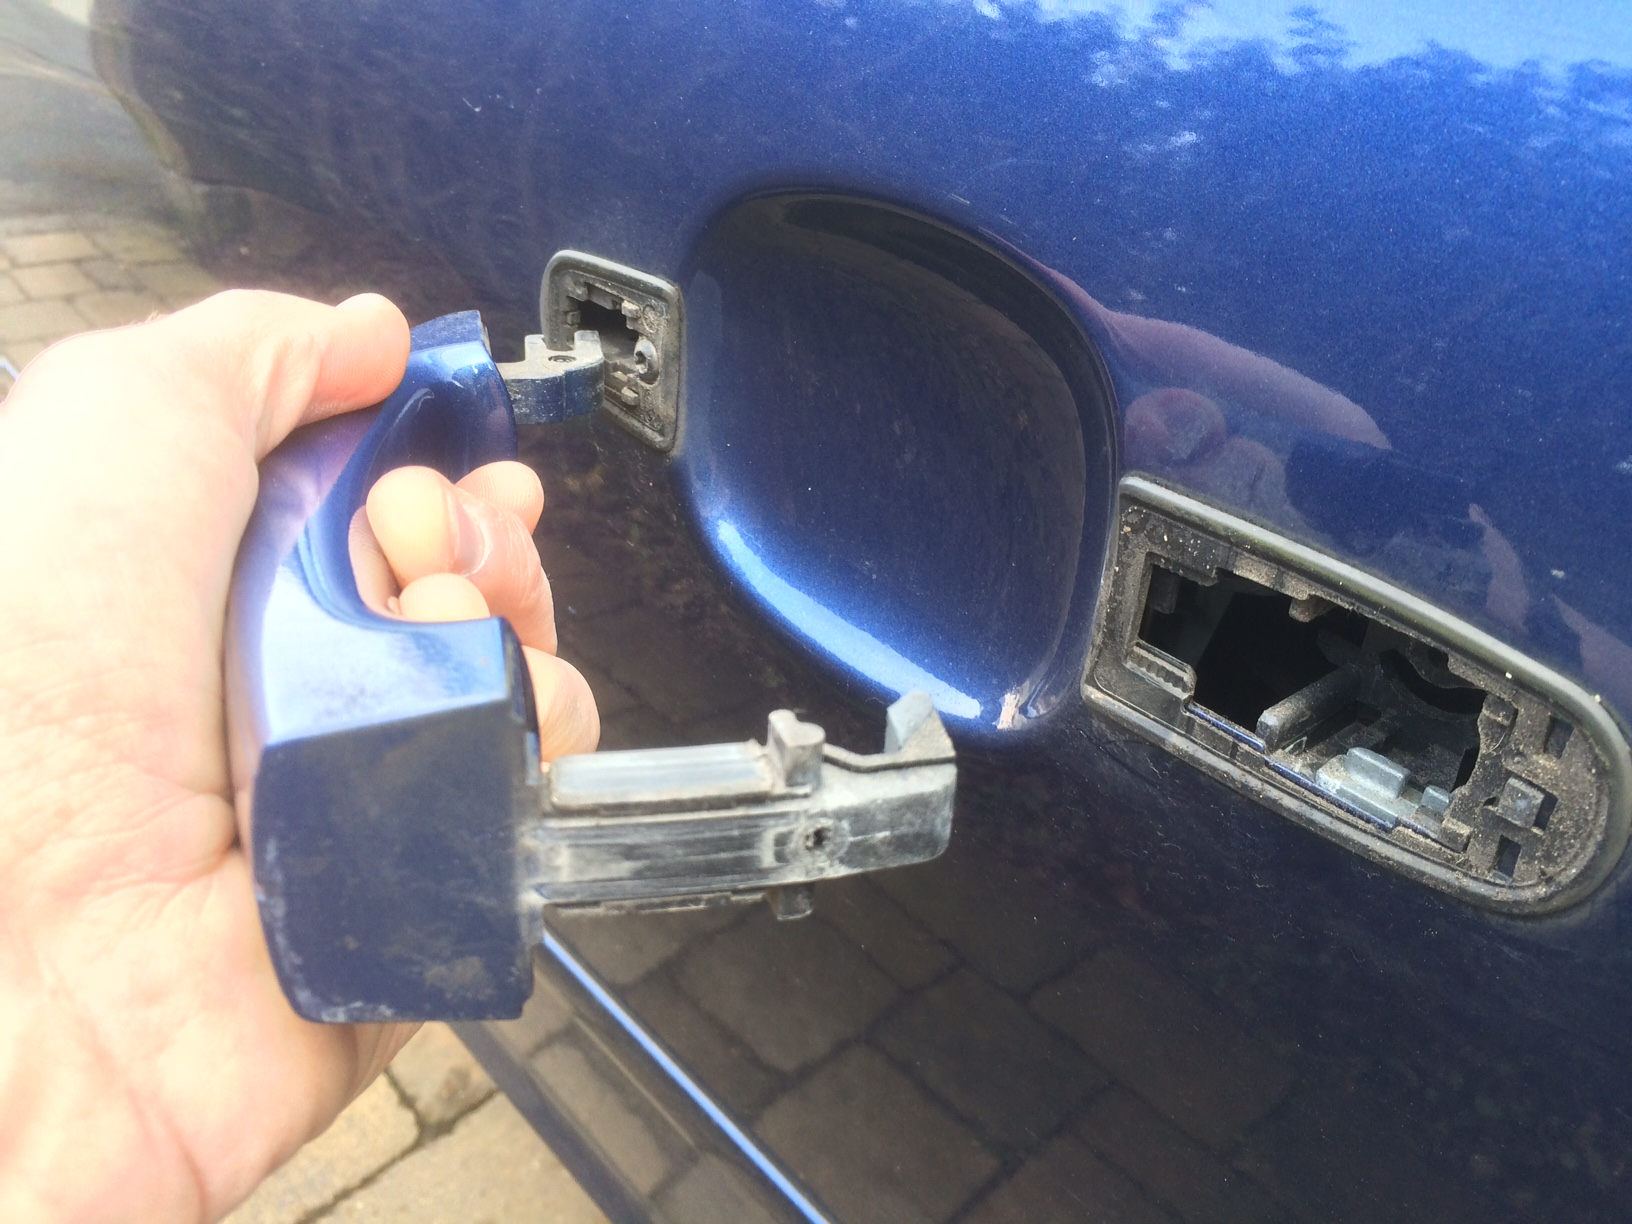 How to replace the exterior door handles on a Mark 2 Ford Focus ...